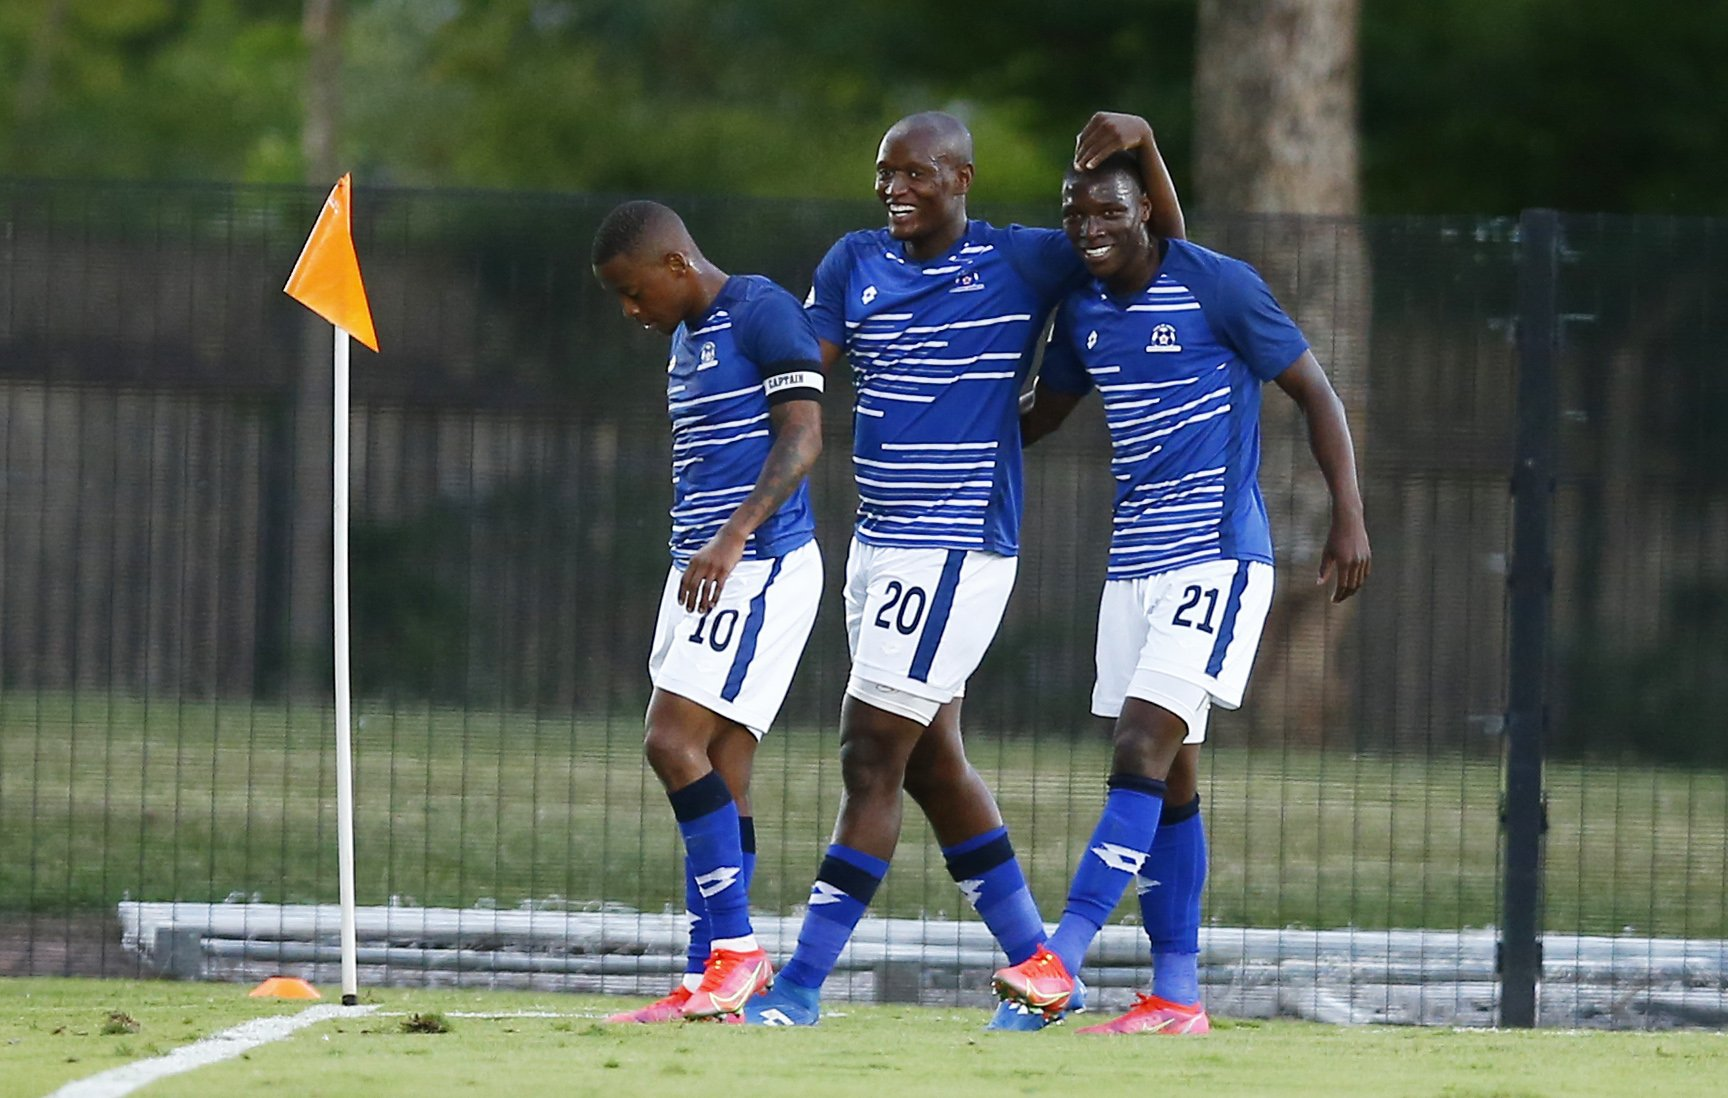 Kutumela punishes wasteful Stellenbosch at the death